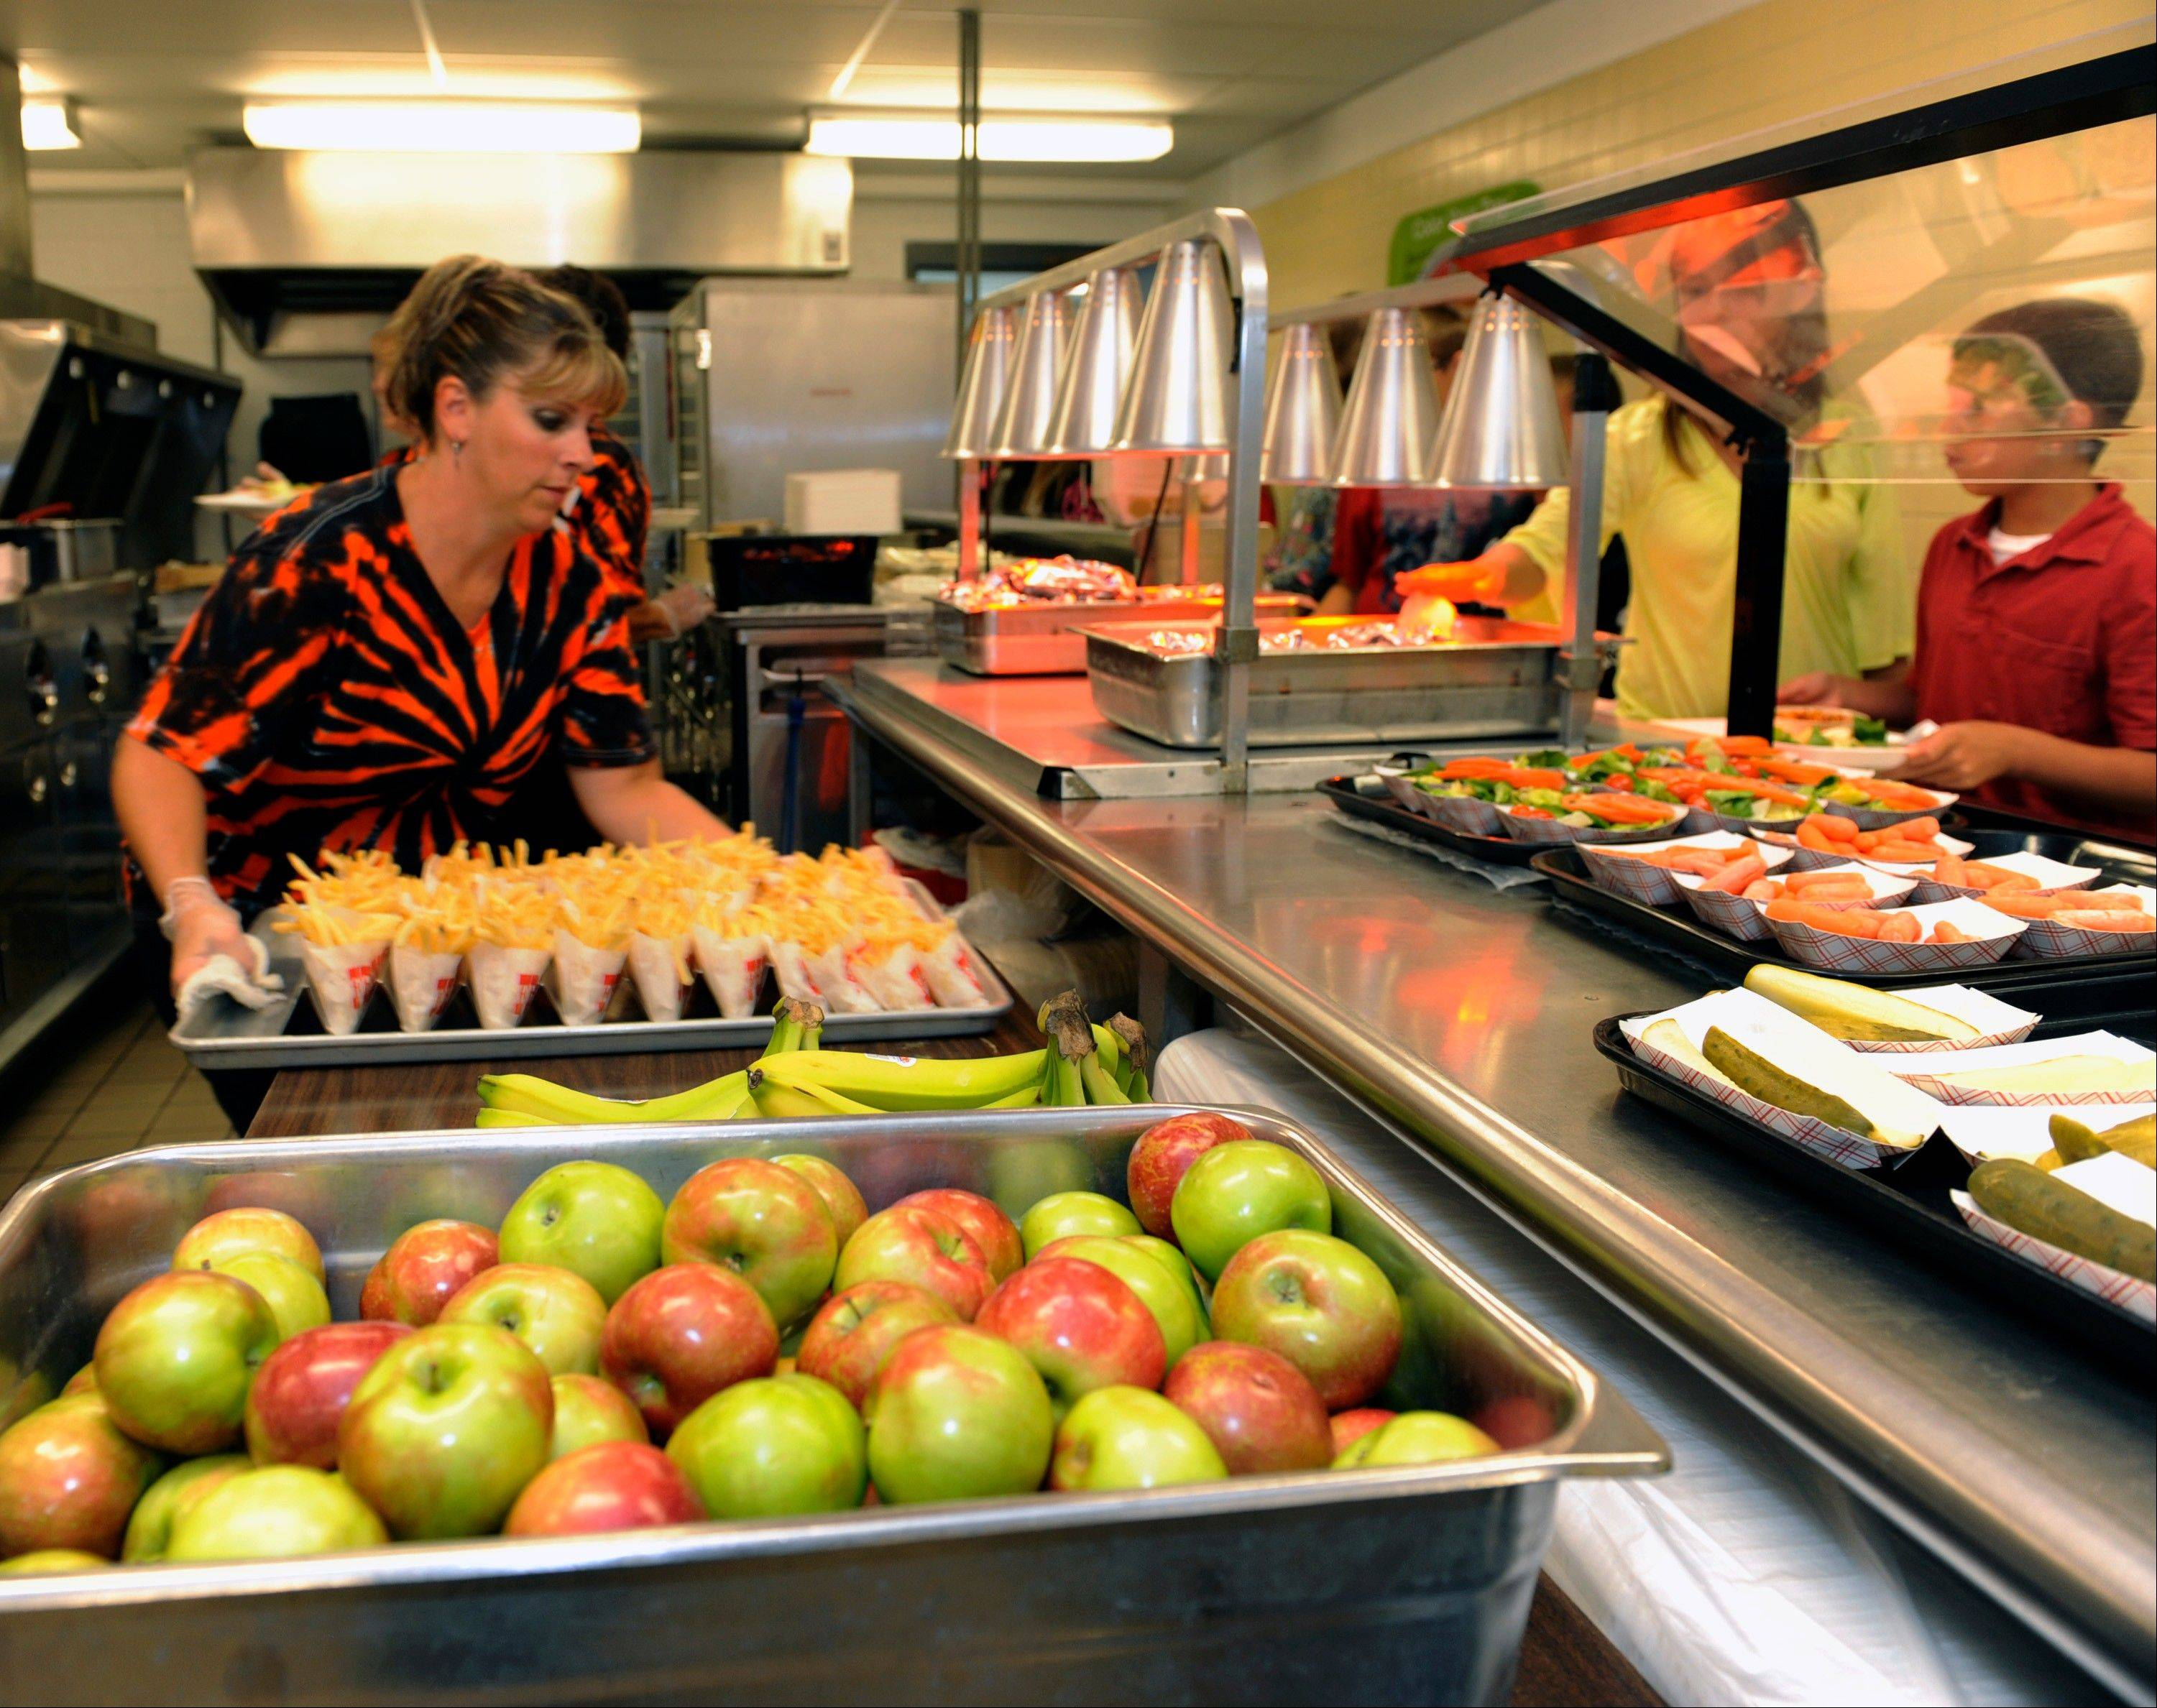 Michel Sasso, replenish's food items along the lunch line of the cafeteria at Draper Middle School in Rotterdam, N.Y., Tuesday, Sept. 11, 2012. The leaner, greener school lunches served under new federal standards are getting mixed grades from students.